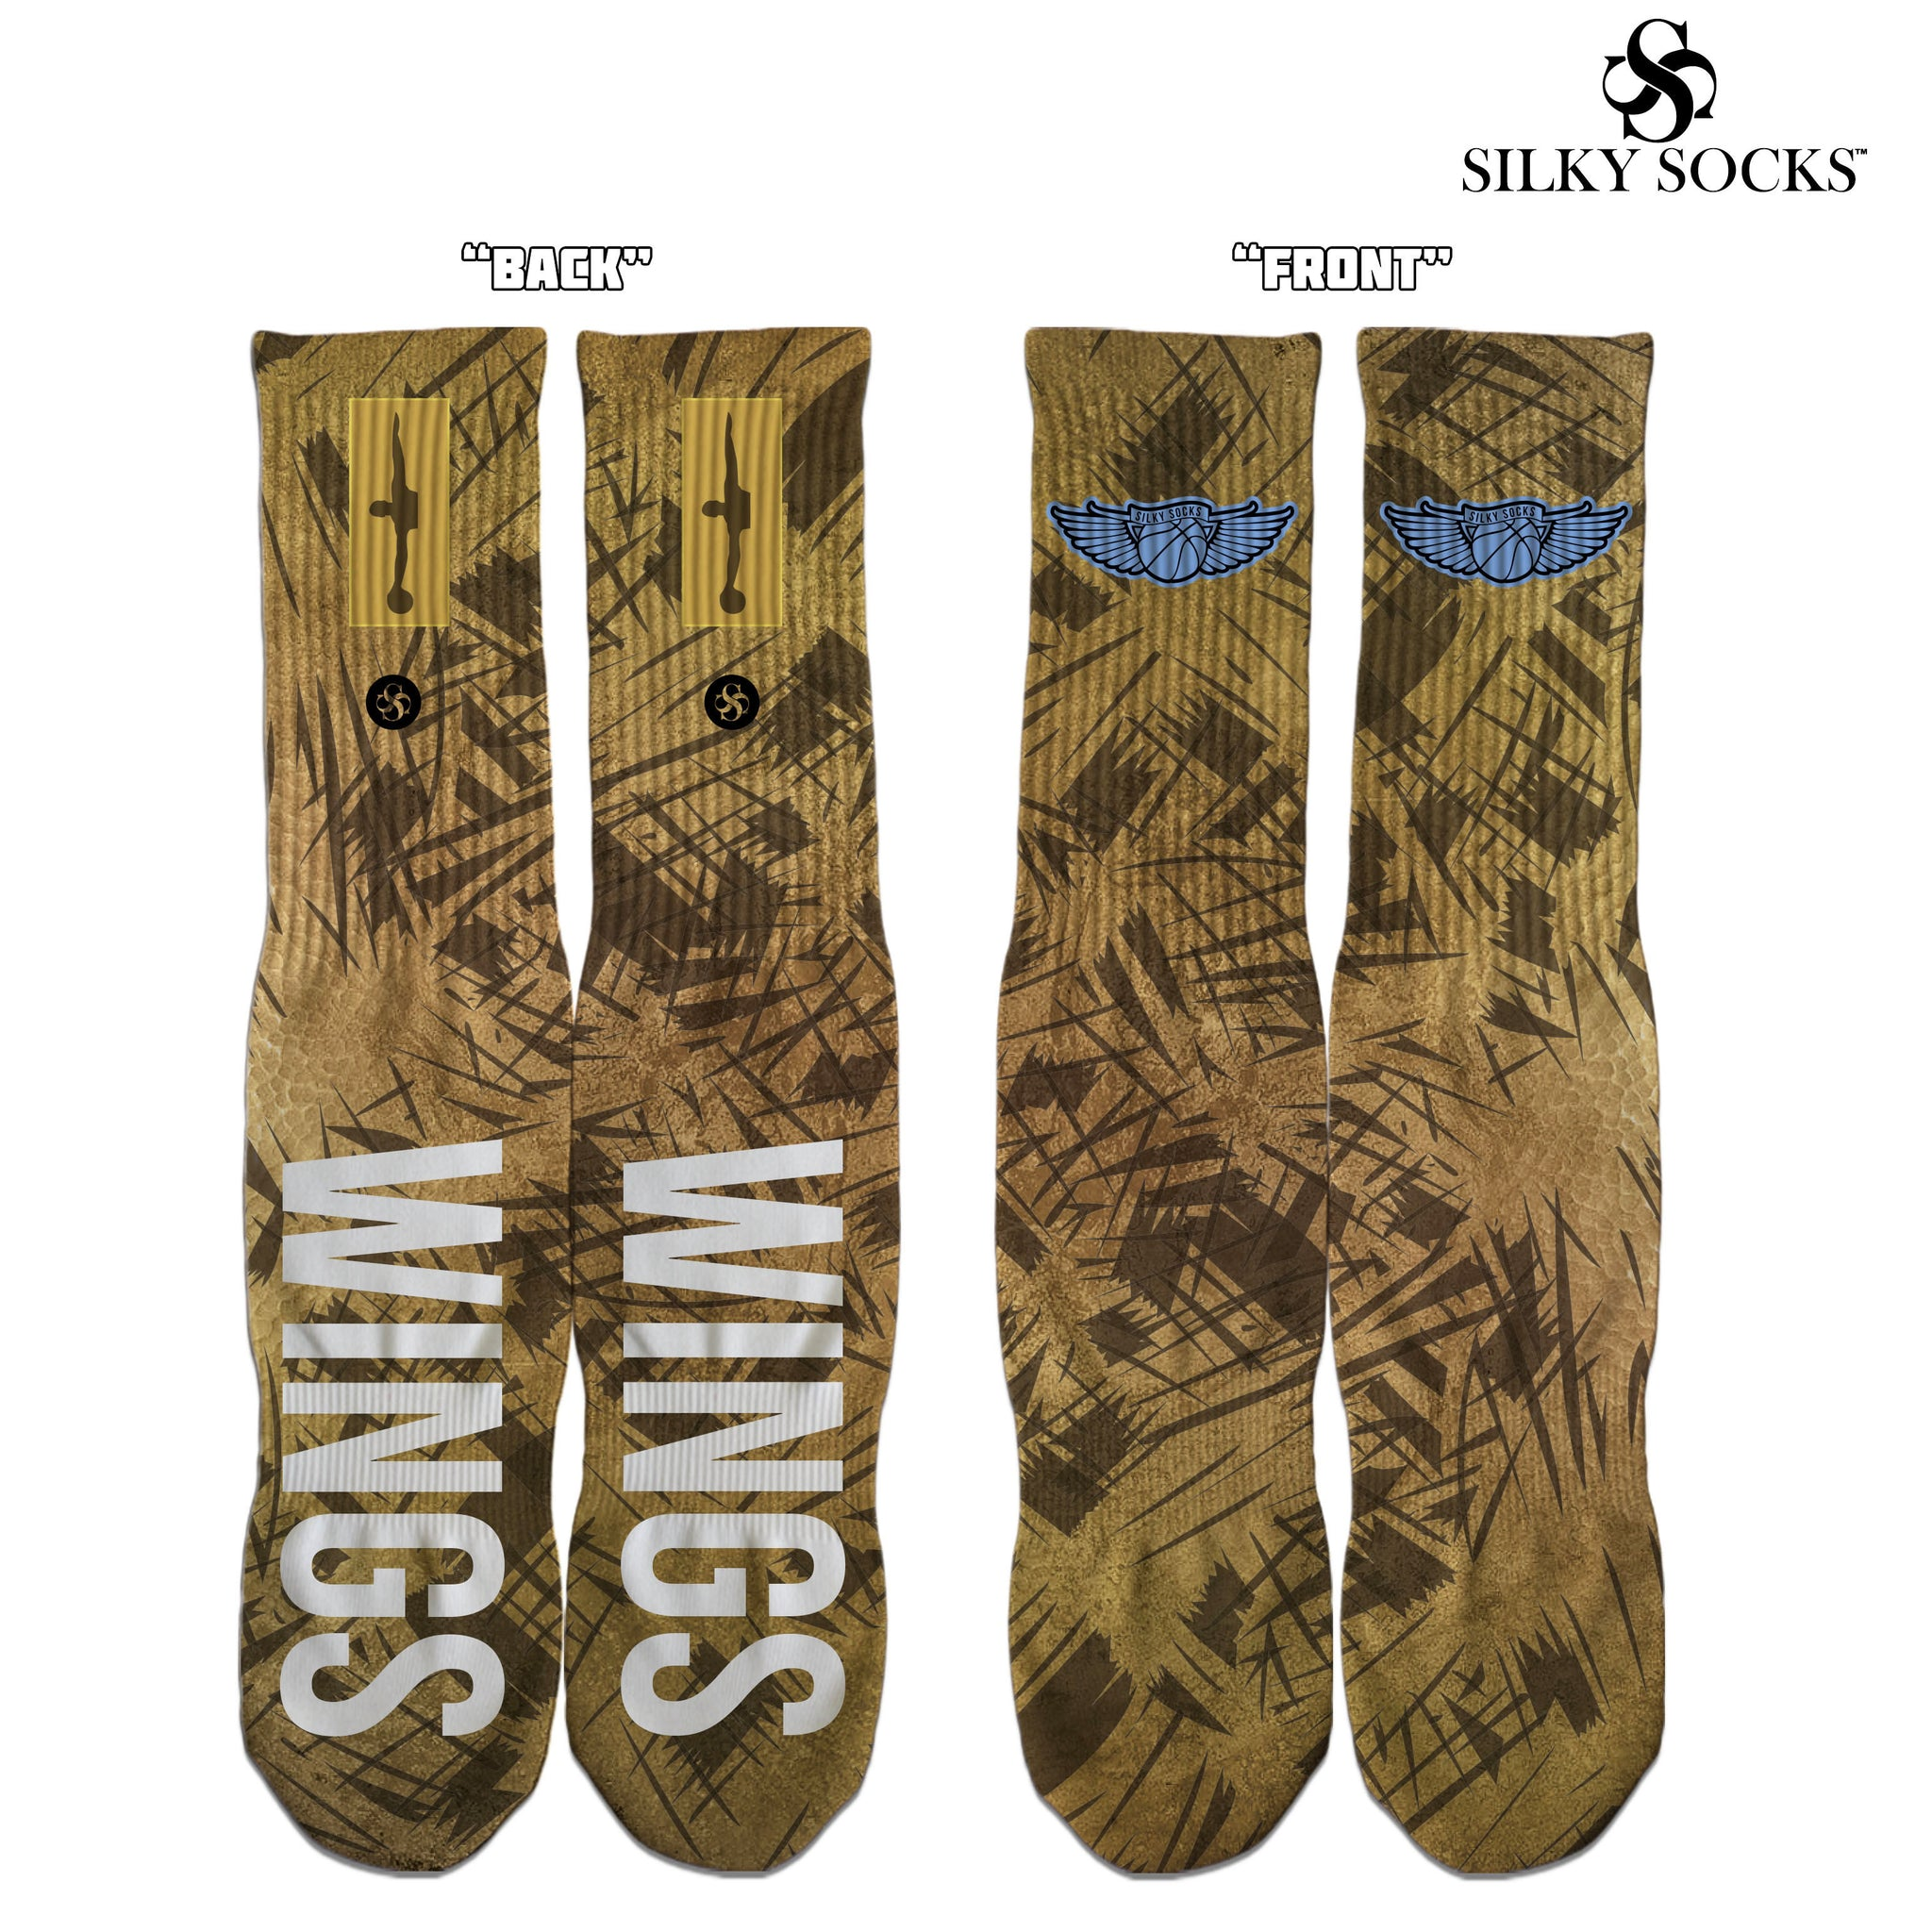 wings air jordan 1 custom socks silky socks